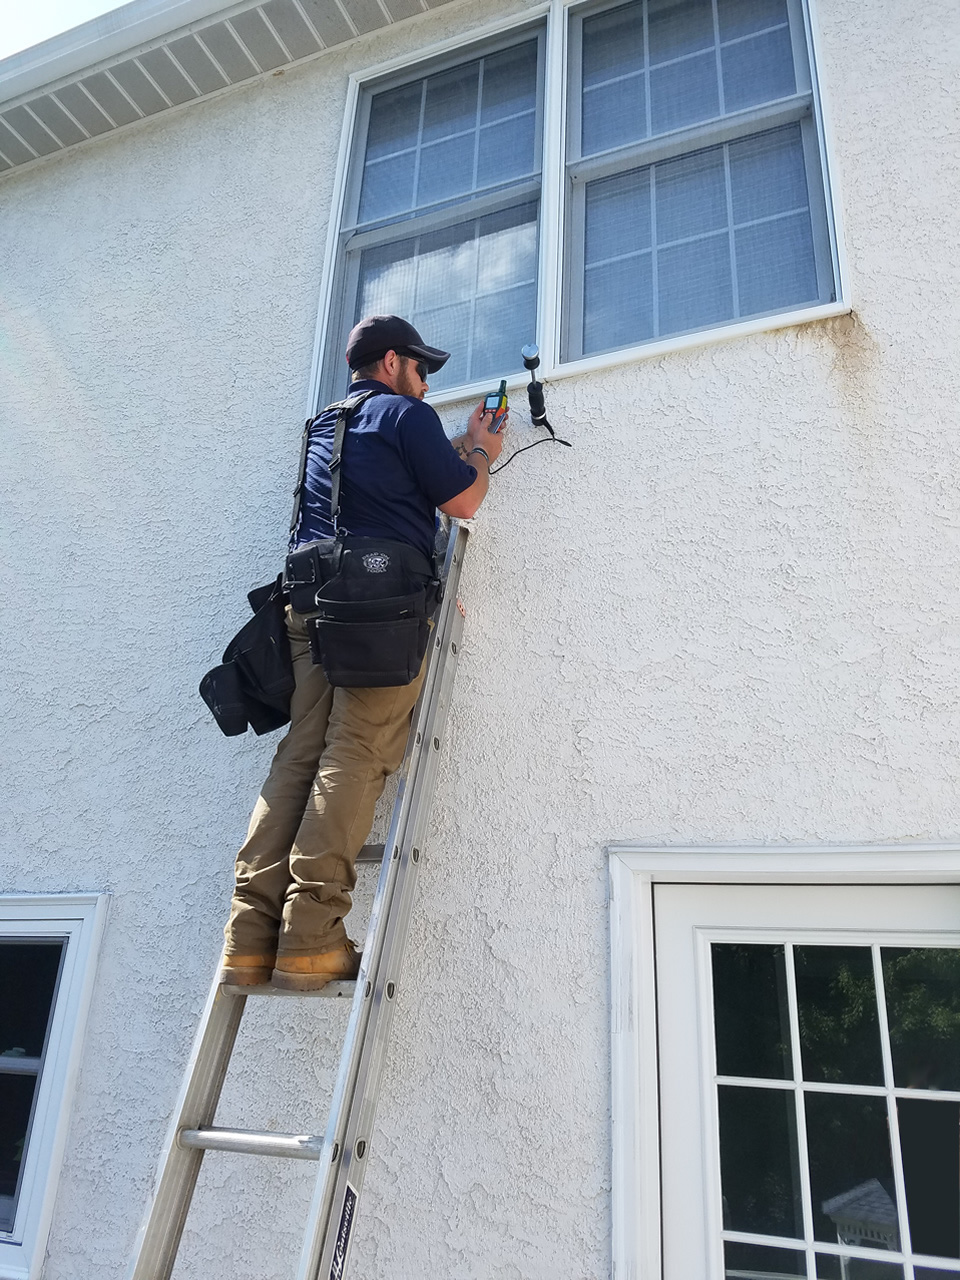 Stucco Inspection EDI Certified Stucco Inspectors in PA Stucco Remediation Stucco Safe Testing Southeast Pennsylvania PA